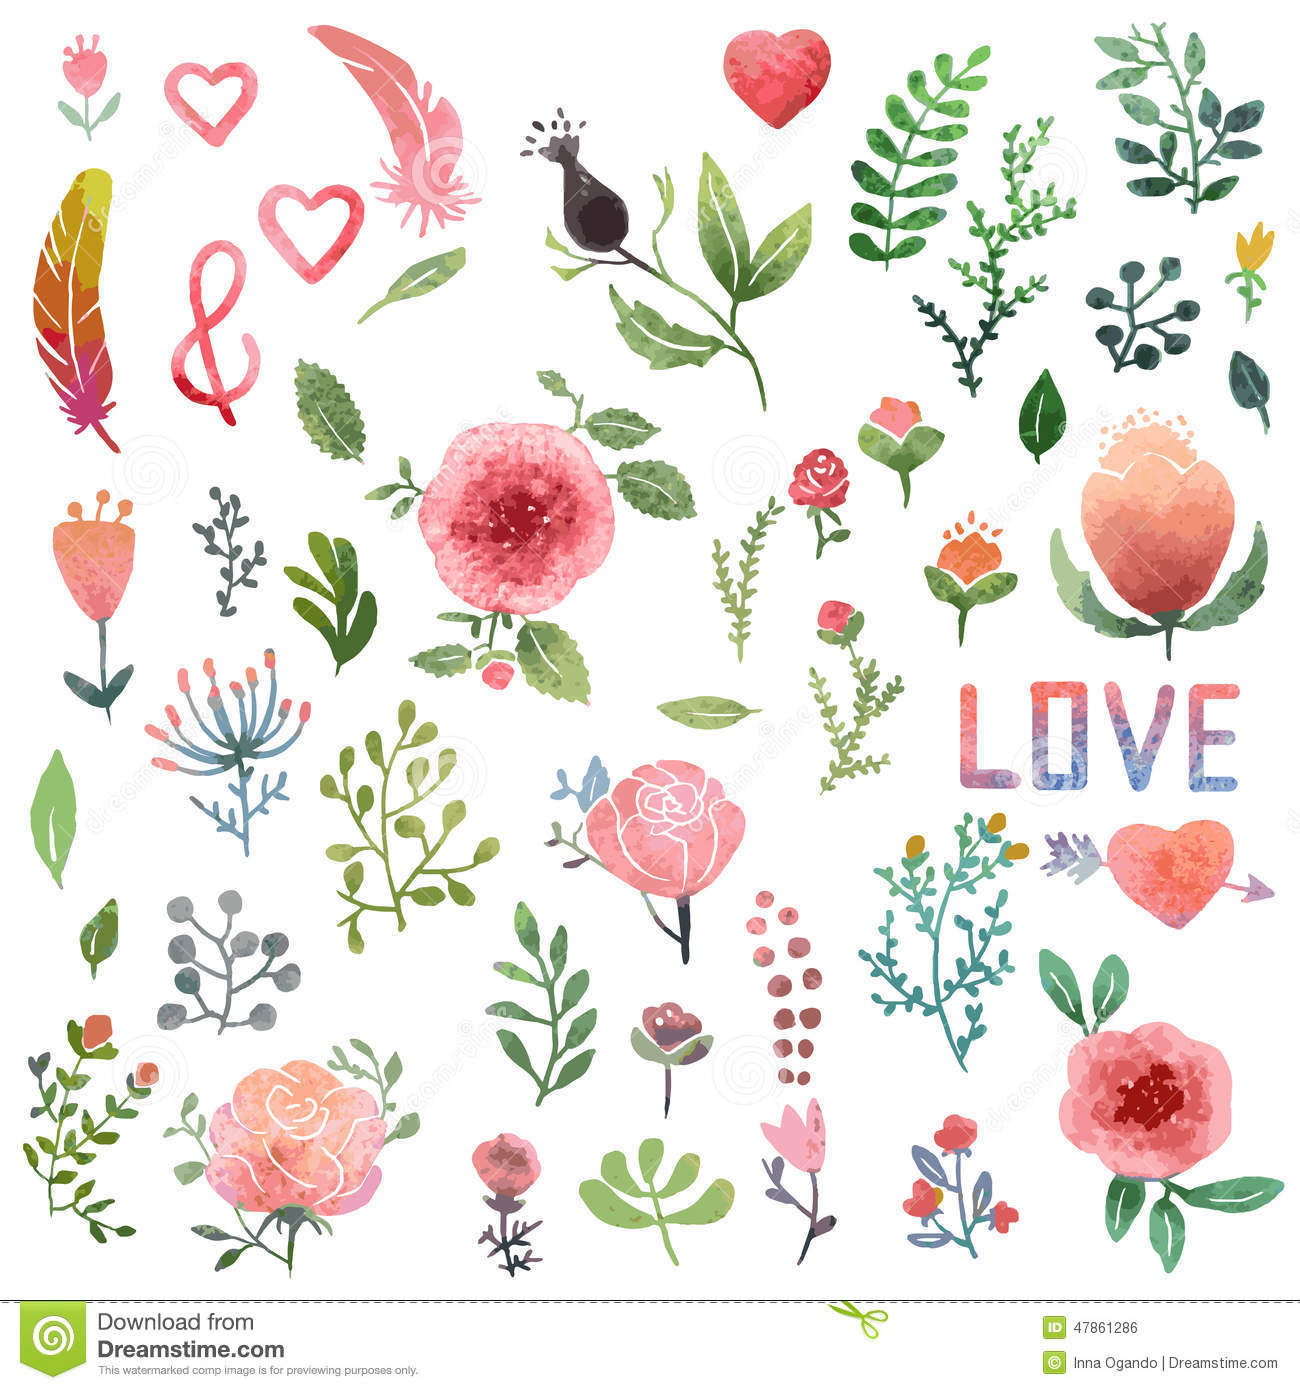 Watercolor clipart clipart black and white library Watercolor Clipart | Clipart Panda - Free Clipart Images clipart black and white library